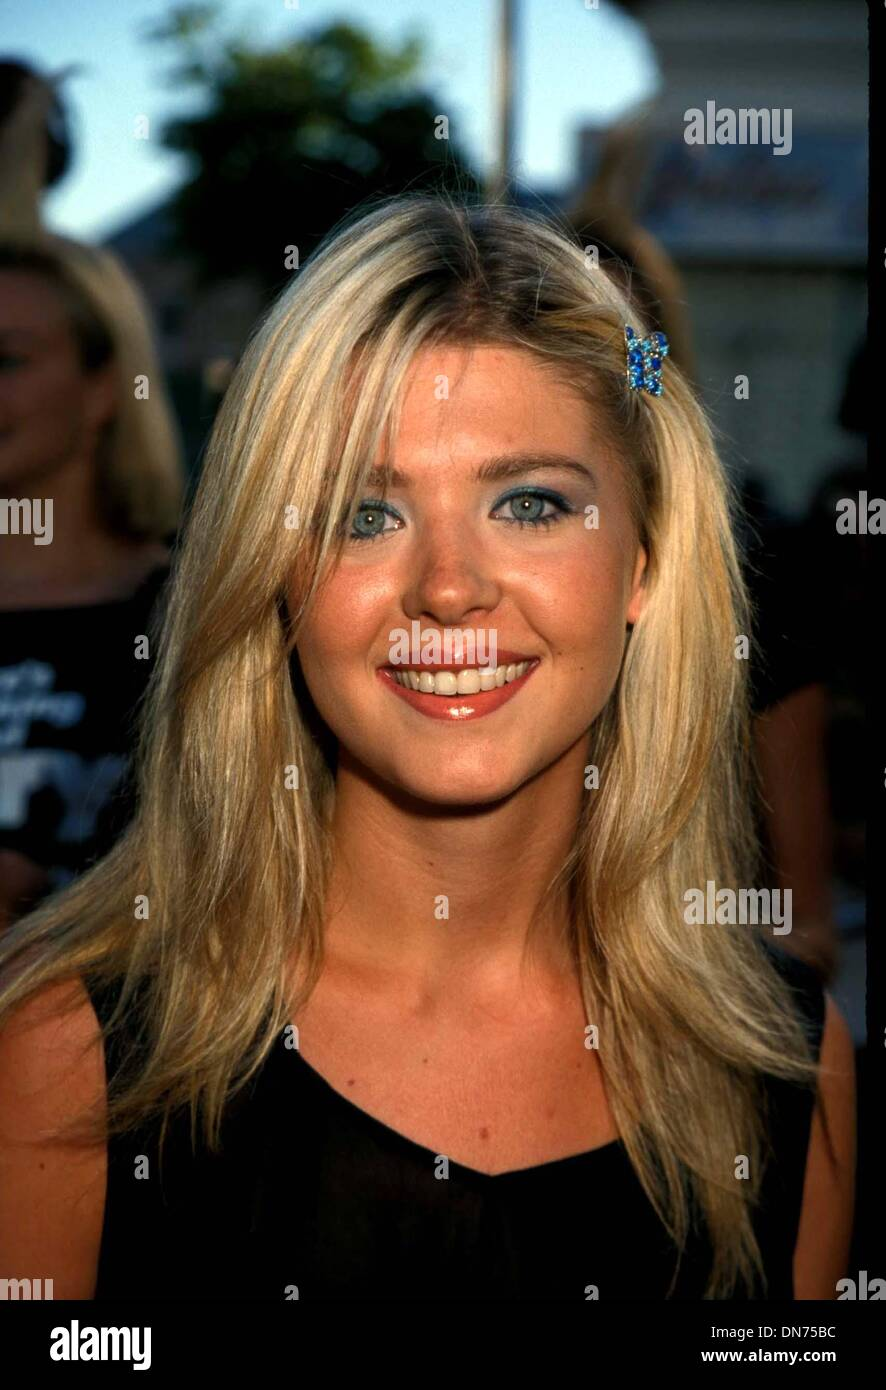 July 9, 1998 - I2450TA.TARA REID.THERE'S SOMETHING ABOUT MARY PREMIERE AT THE MANN'S VILLAGE THEATRE 07-09-1998. TAMMIE ARROYO- -  PHOTOS(Credit Image: © Globe Photos/ZUMAPRESS.com) - Stock Image